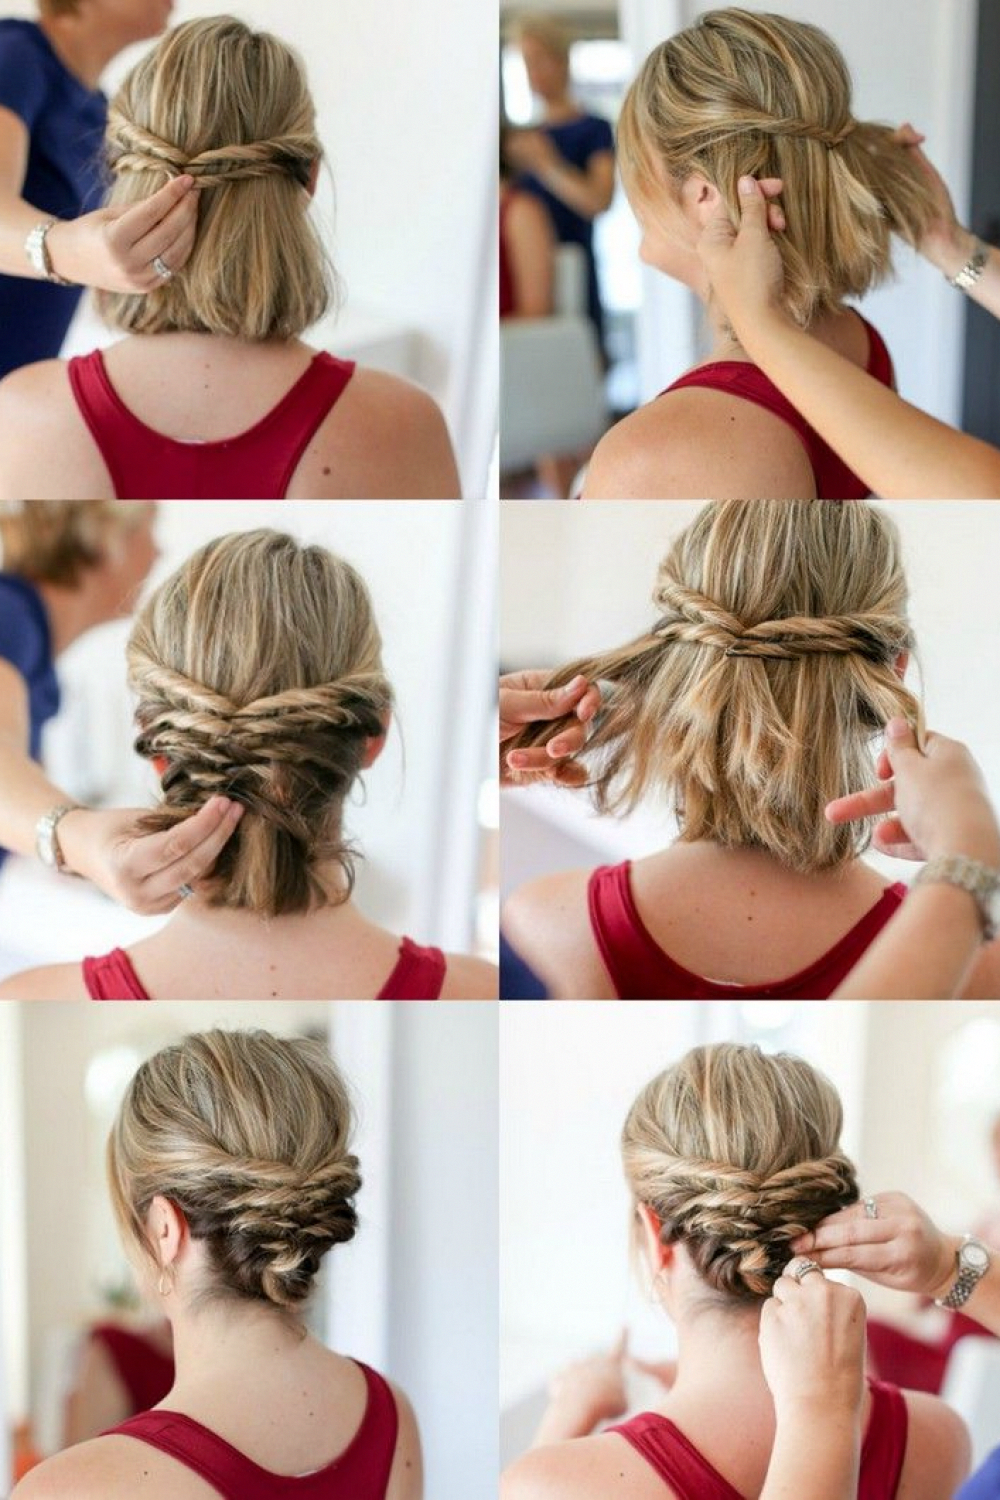 Braid Hairstyles Updo Pony Tails Braid Hairstyles Updo Simple Braid Hairstyles Updo Bun Braid Hai Short Hair Styles For Round Faces Hair Styles Short Hair Updo